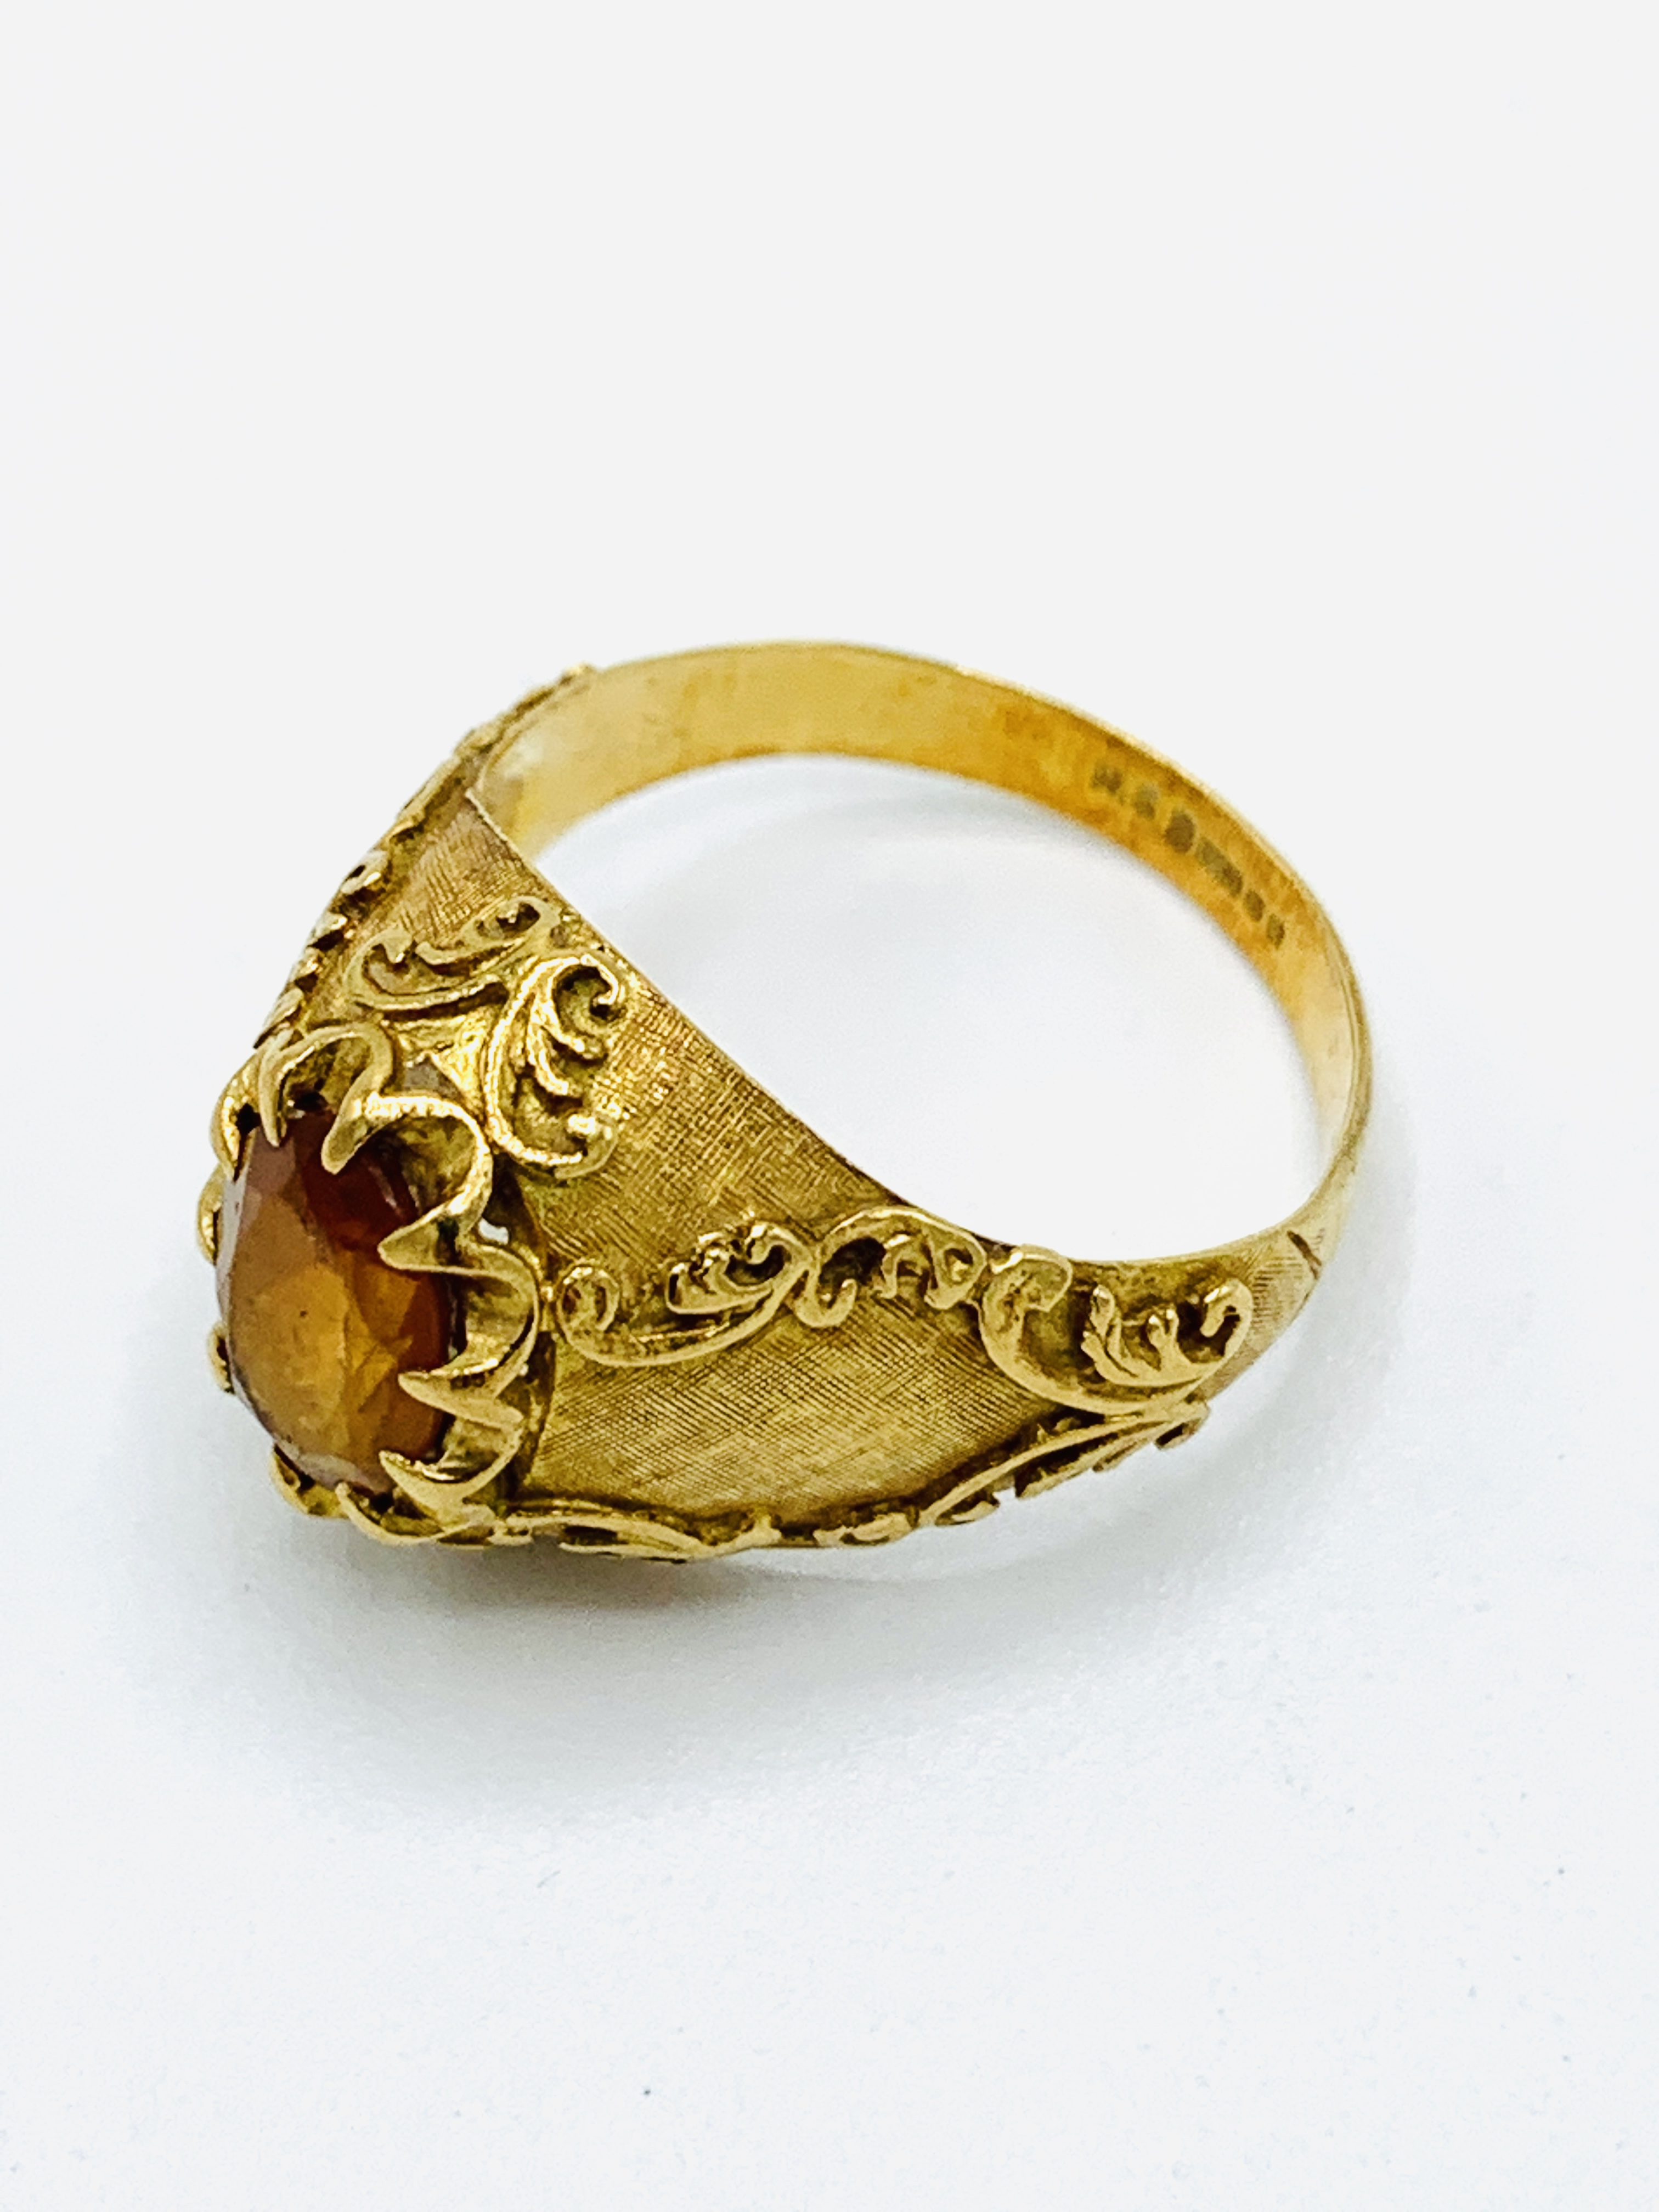 18ct gold and citrine ring and a yellow metal and yellow stone ring - Image 7 of 8